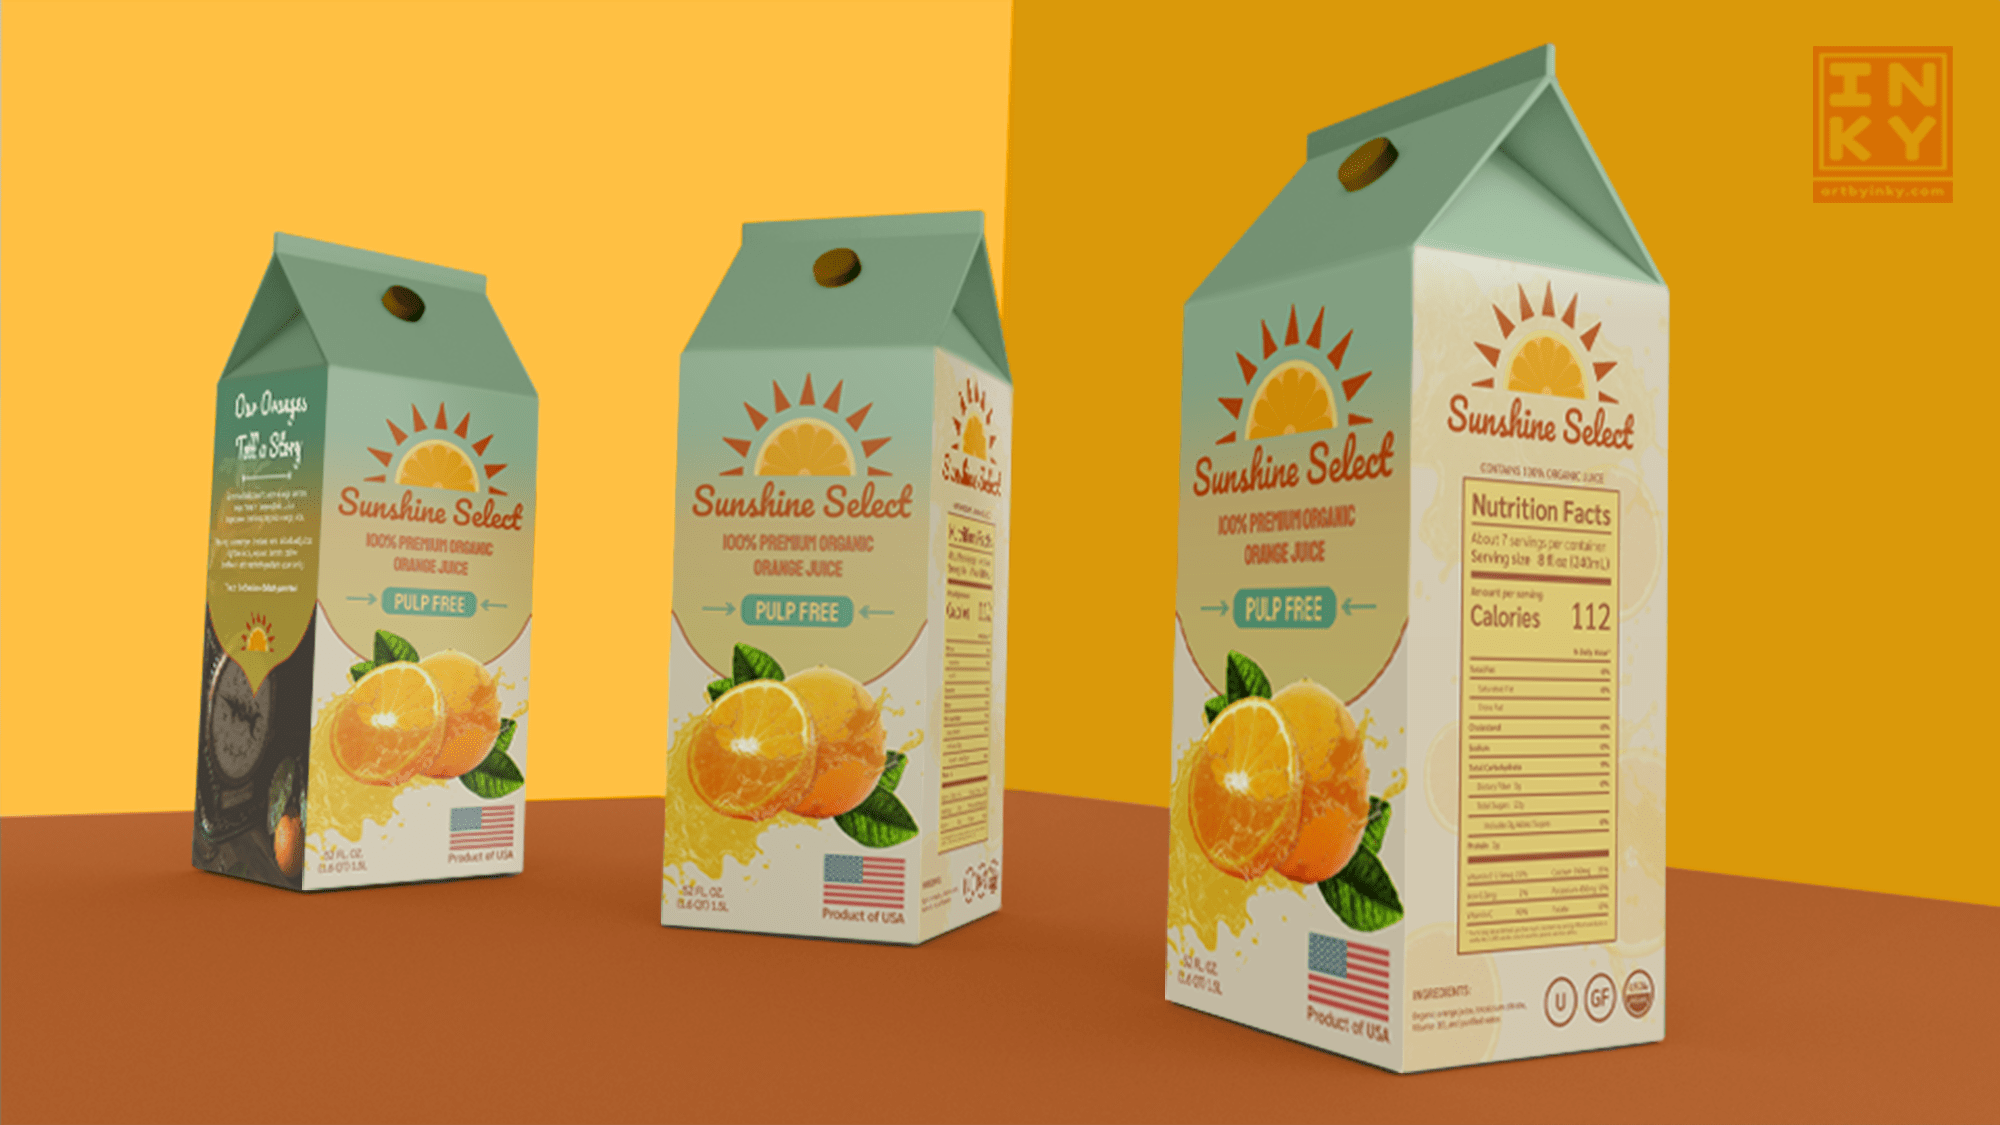 A packaging mockup of Sunshine Select, a fictional business, created by Aleesha Lindstrom